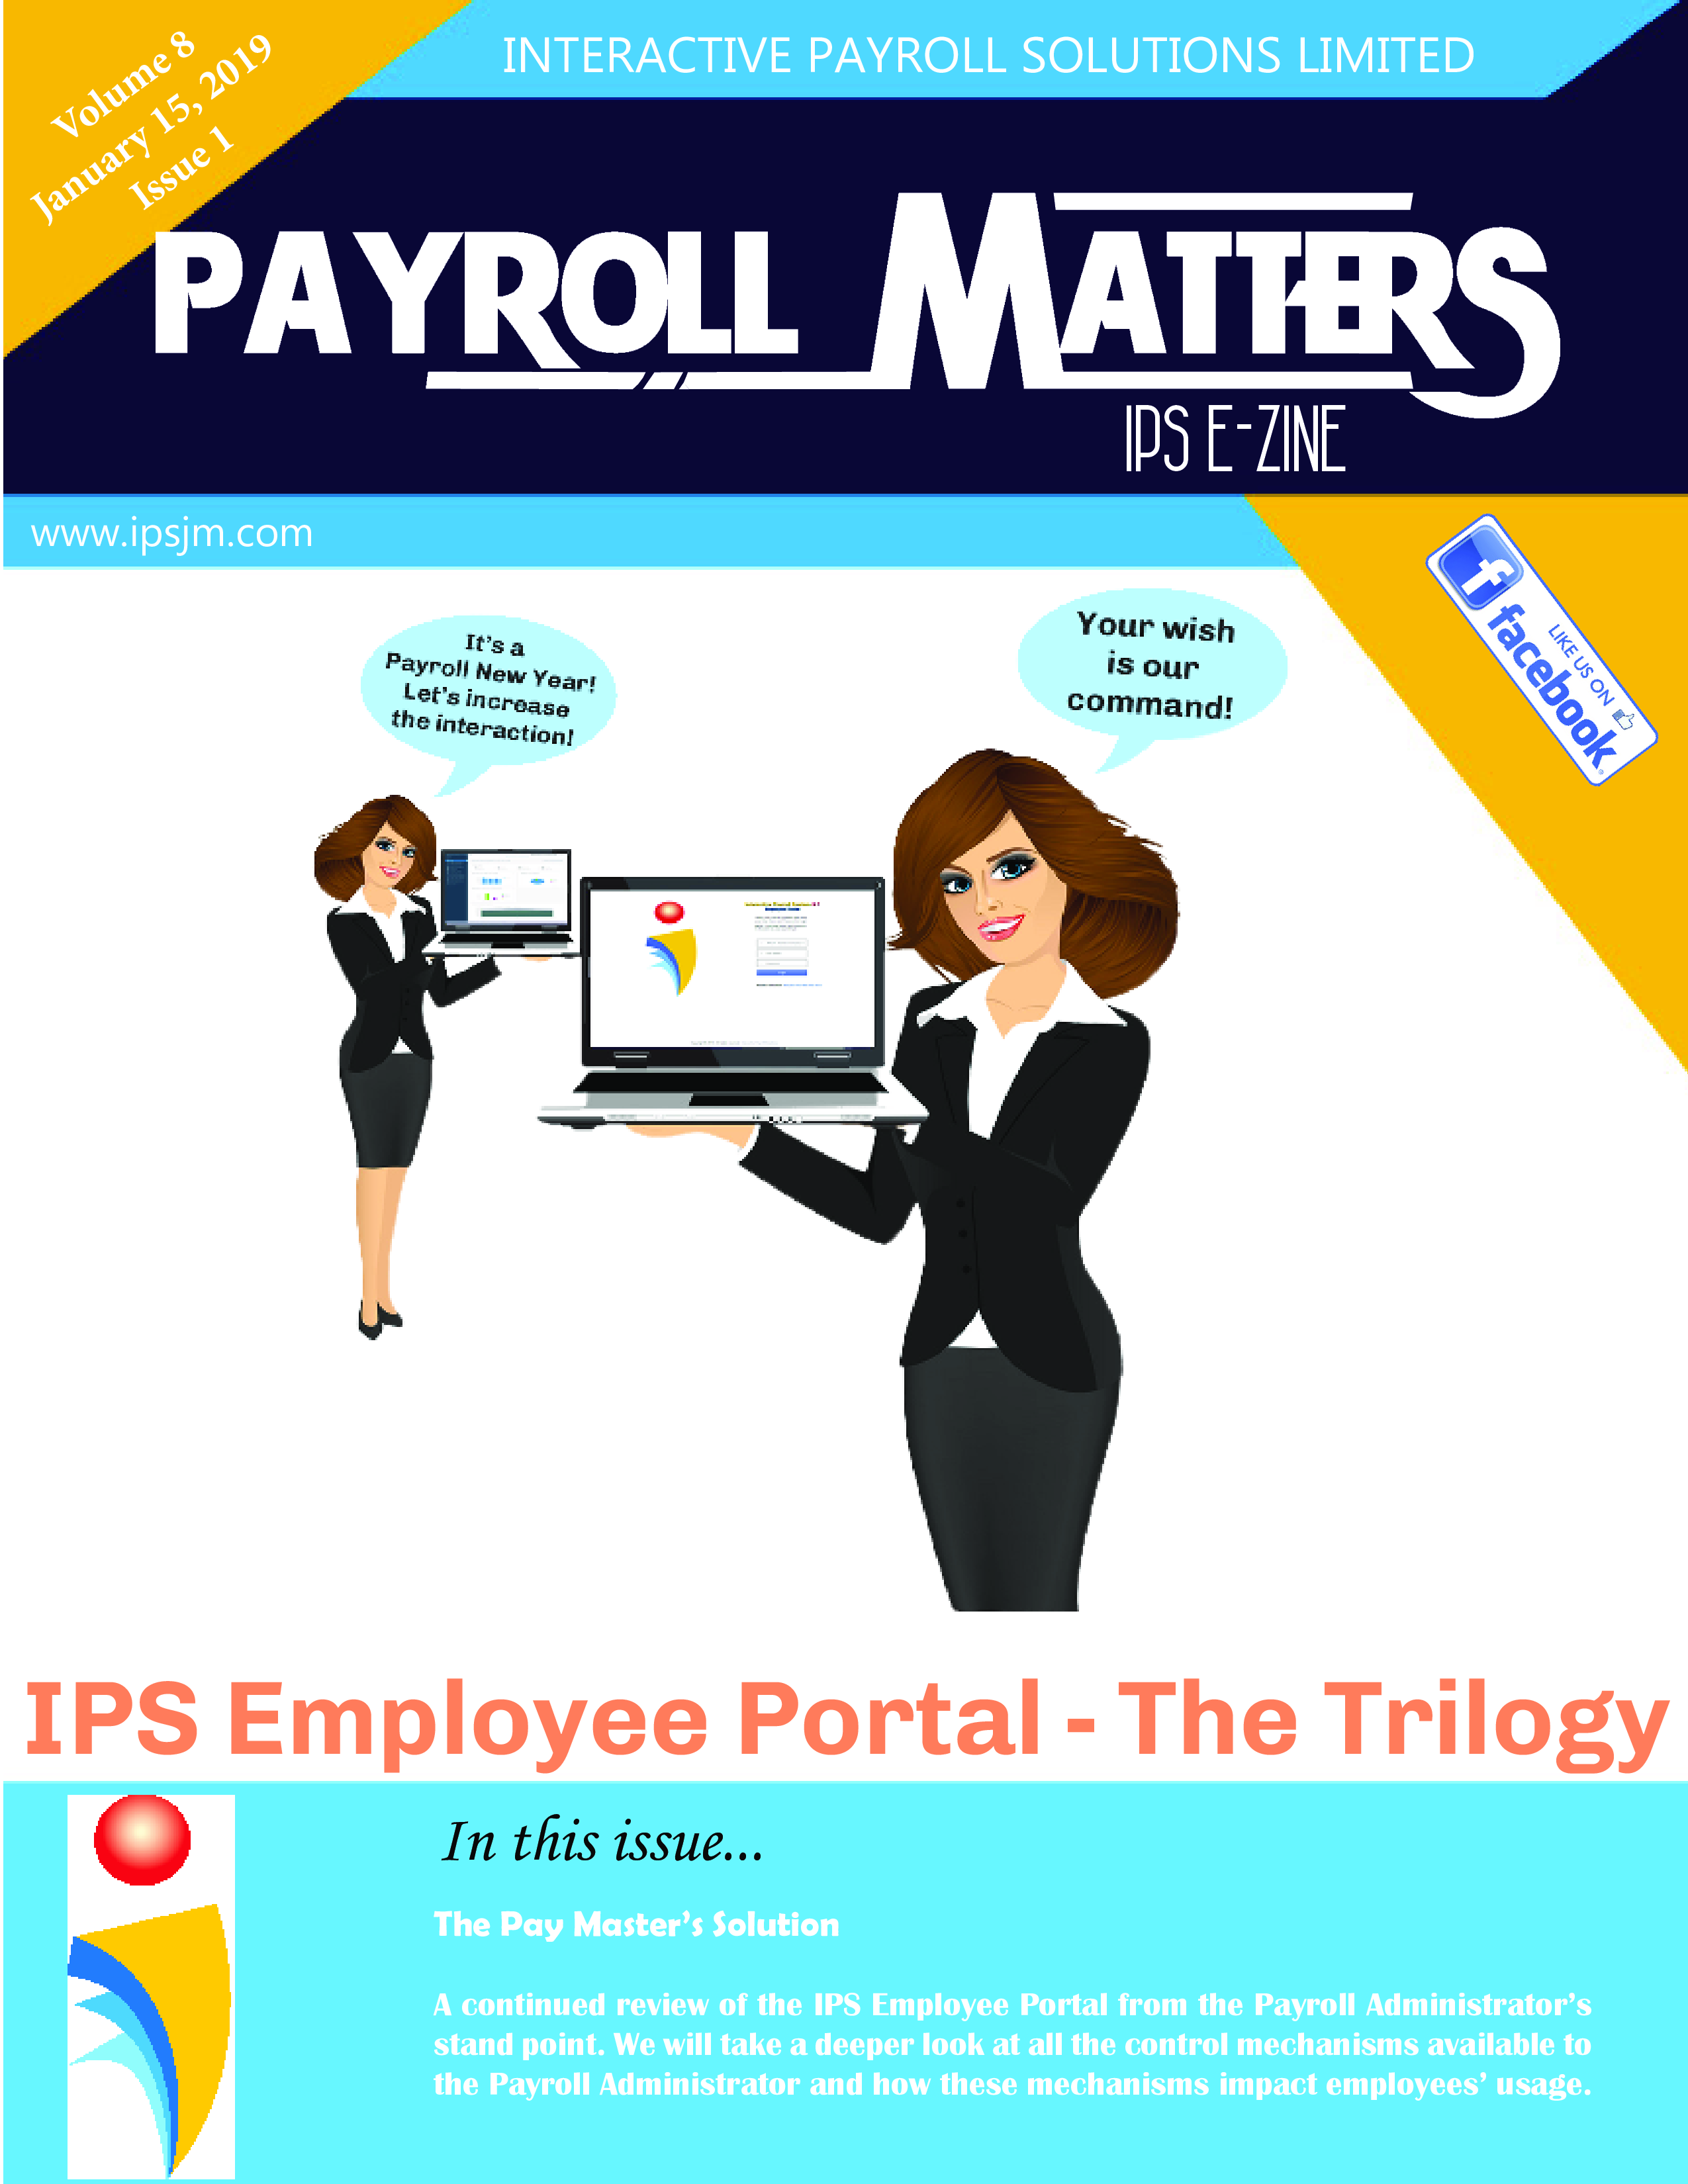 Newsletters - Interactive Payroll Solutions